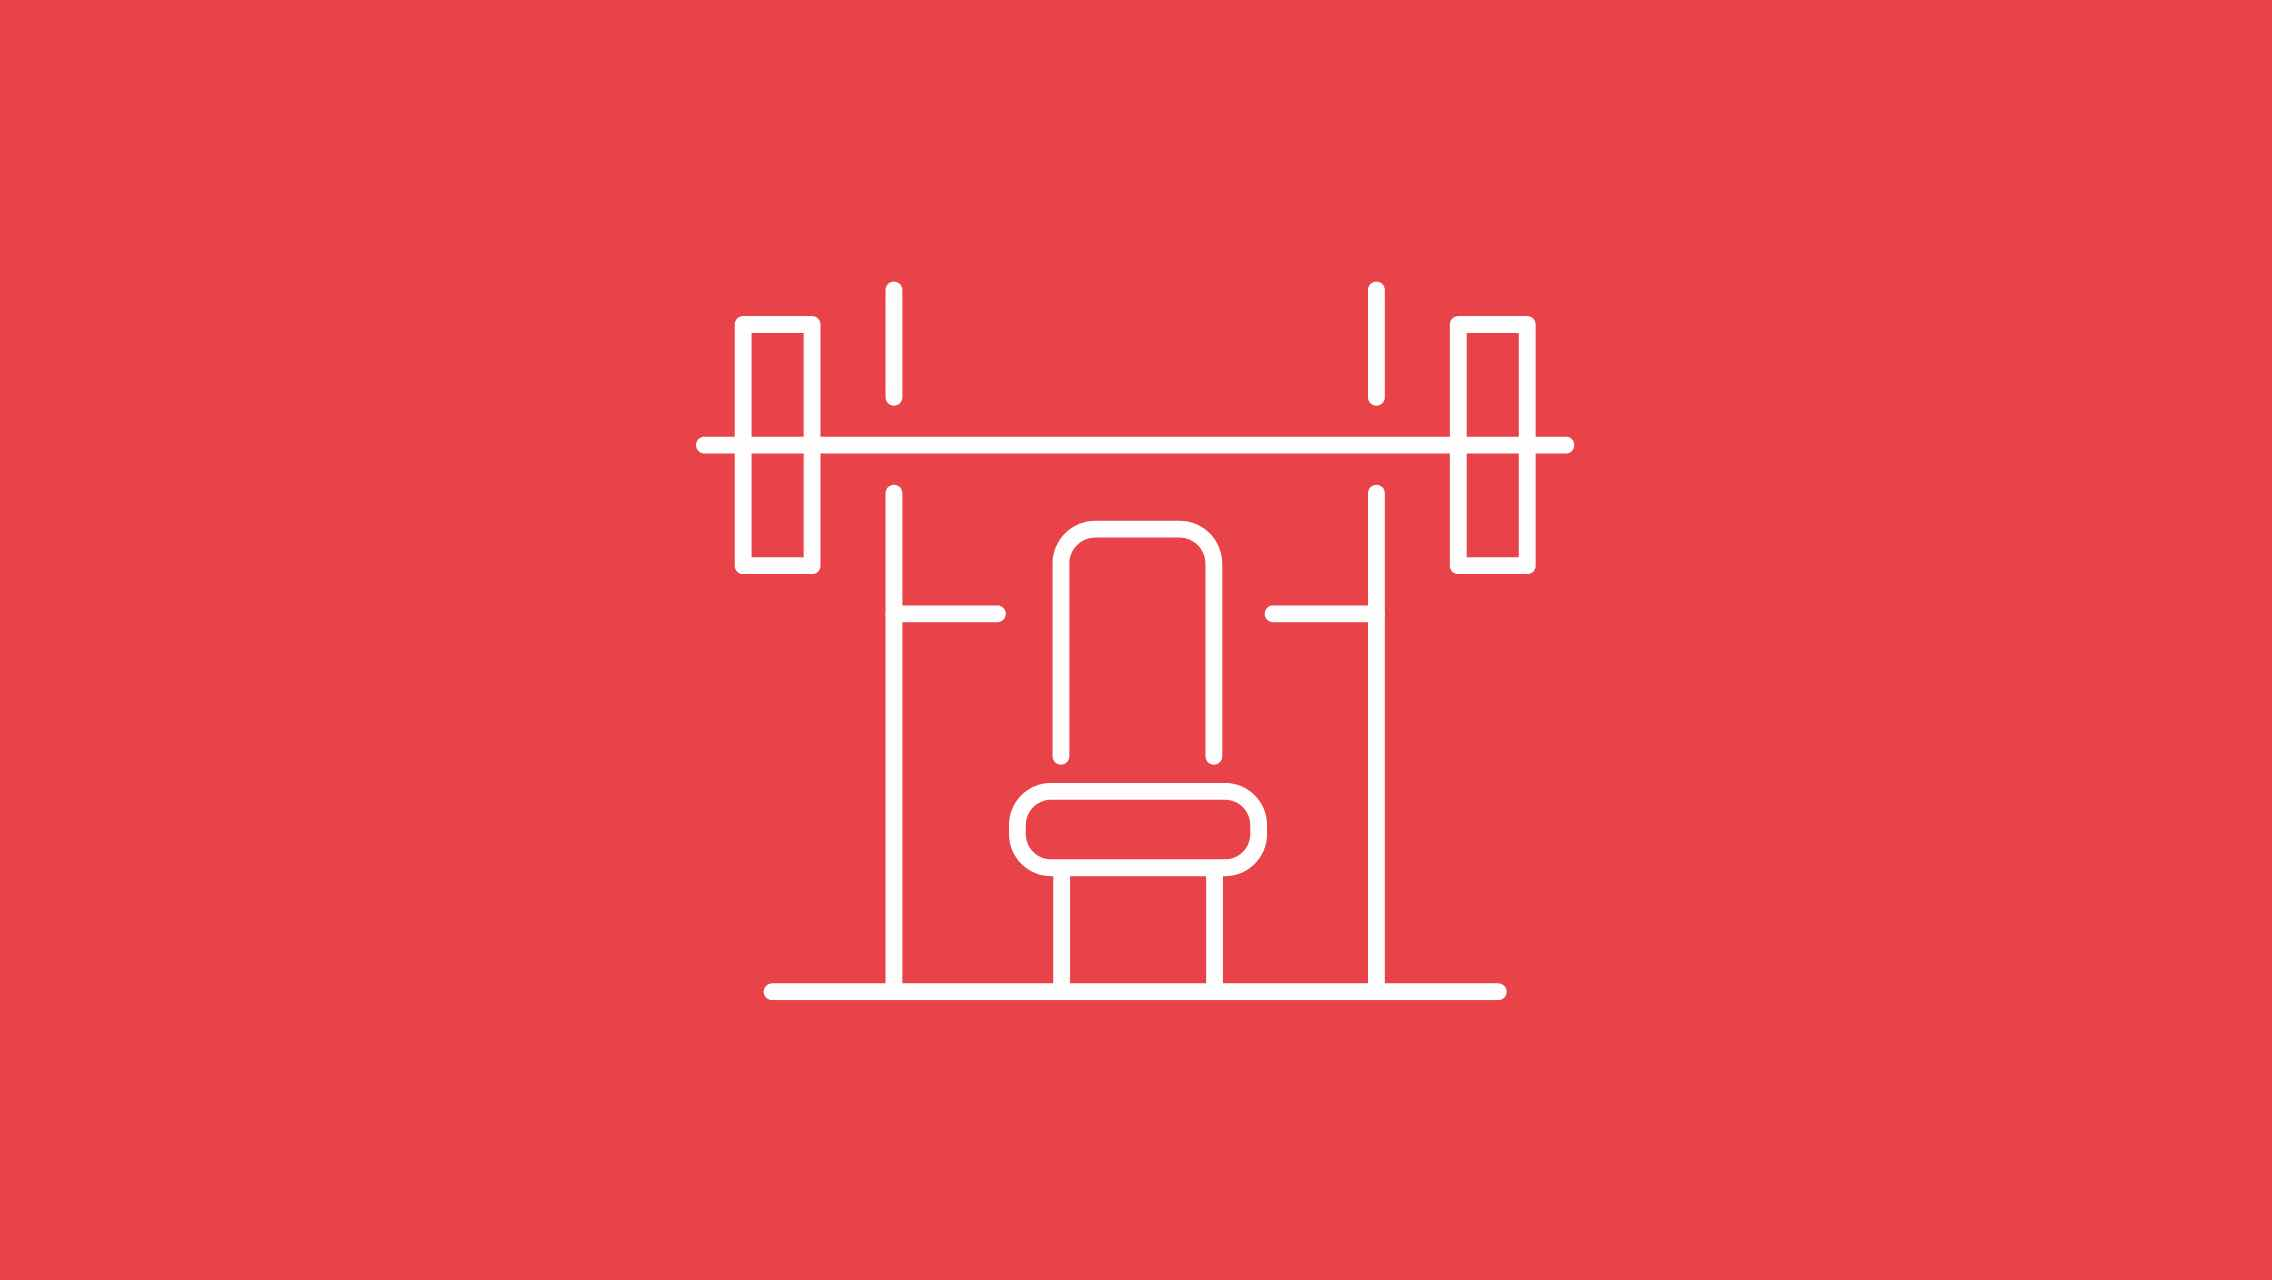 An illustration of a weight-lifting bench and rack on a red background.